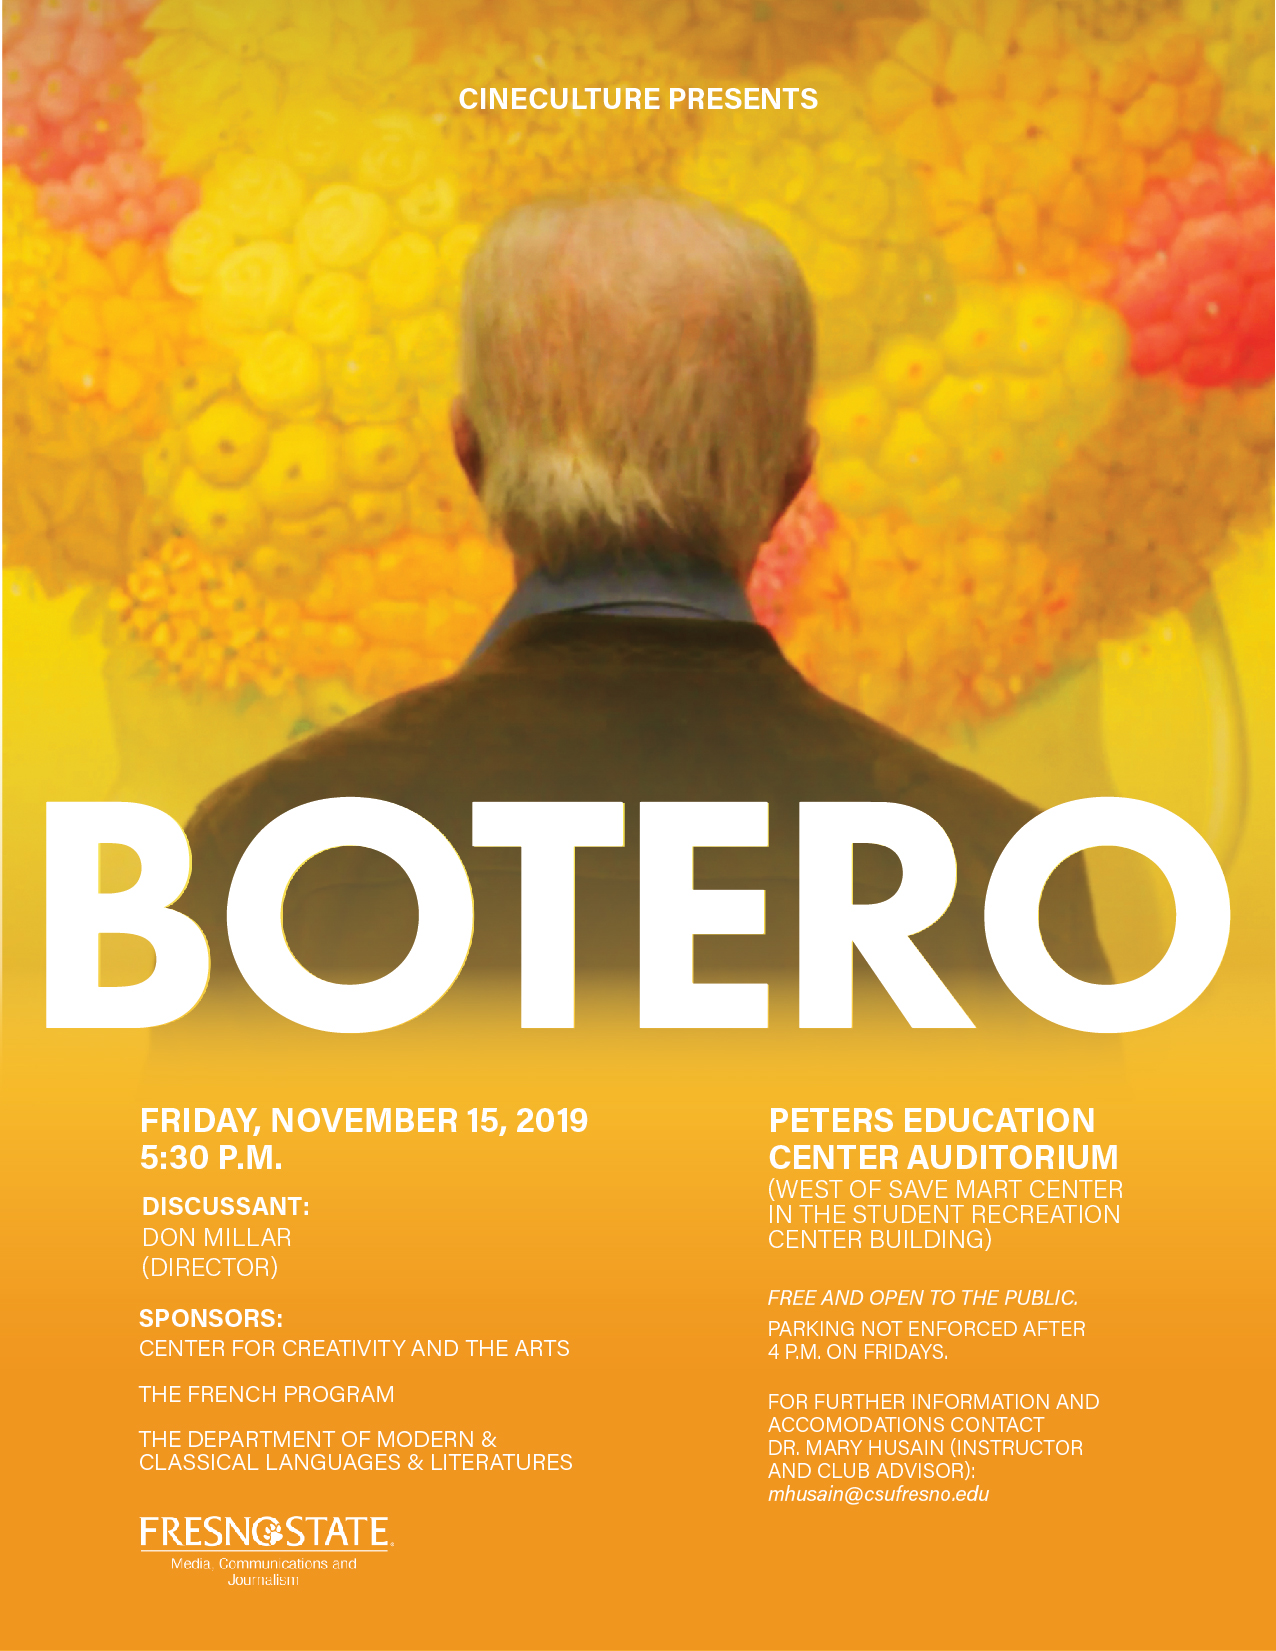 cineculture botero SCREEN_REVISED